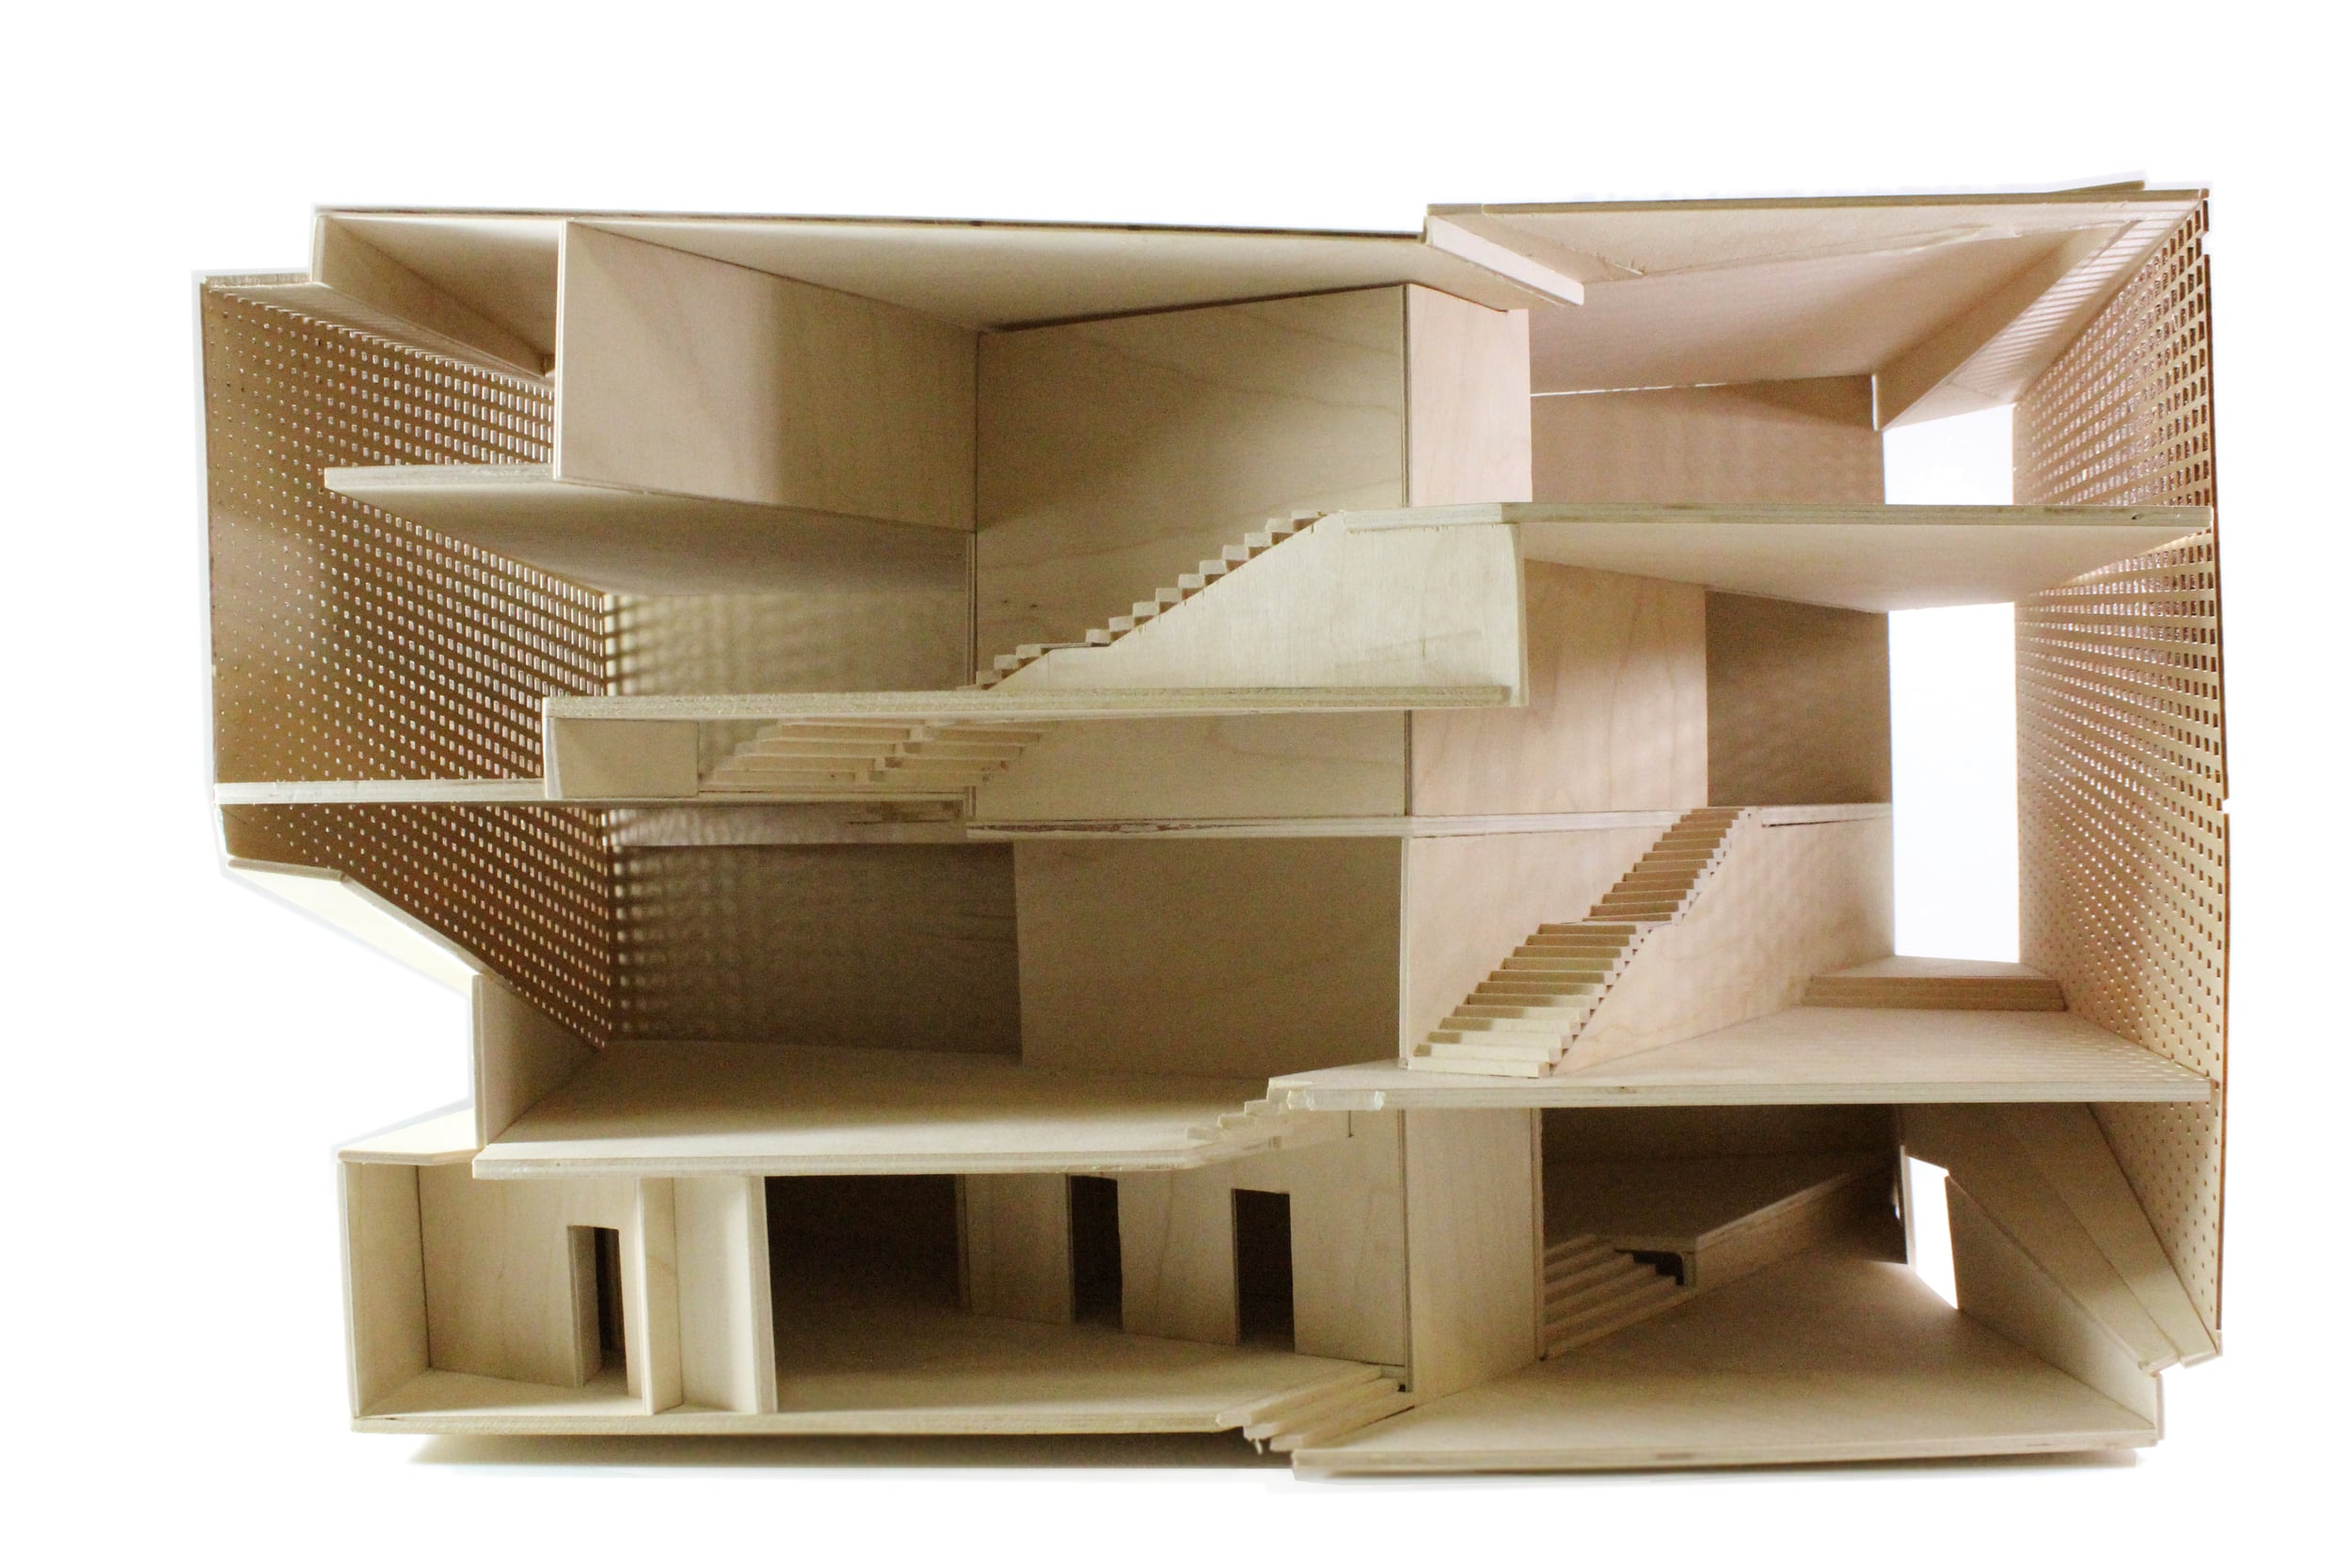 "Sectional model at 3/16"" = 1'. Model was constructed with saw-cut plywood. Facade was made from lasercut basswood."